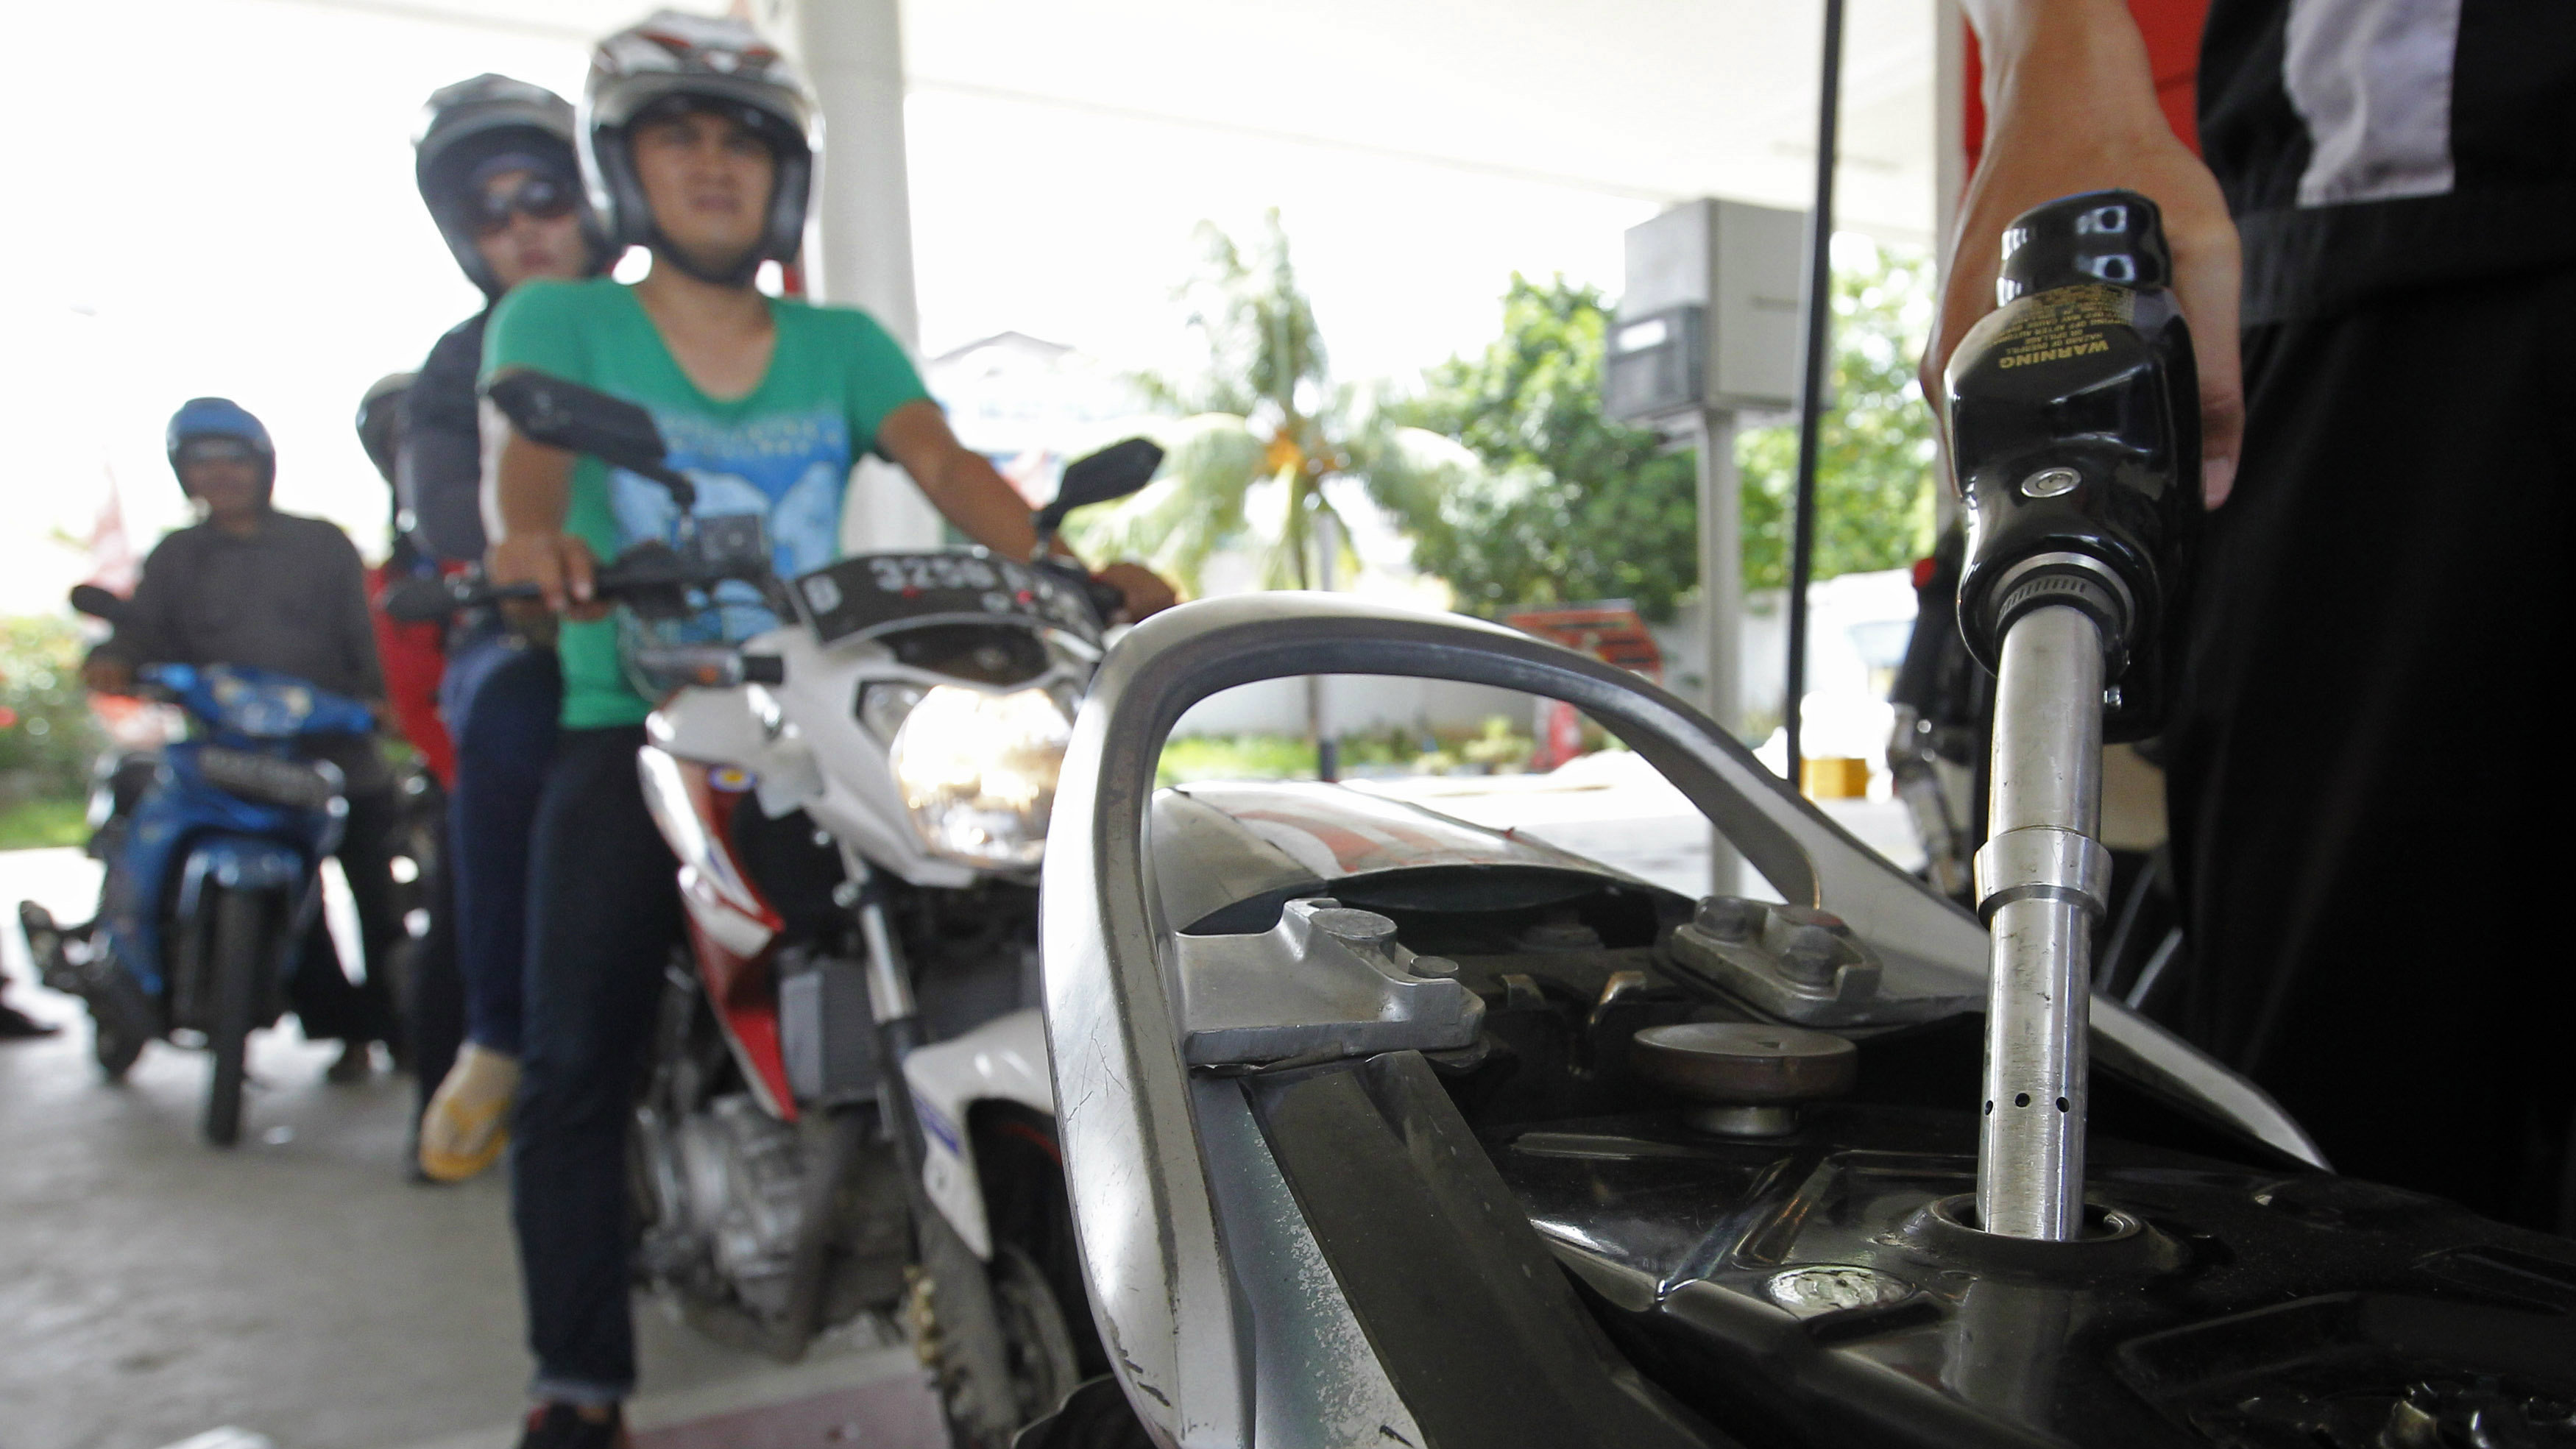 An employee of state-owned Pertamina refuels a motorcycle at its petrol station in Jakarta, December 17, 2014.